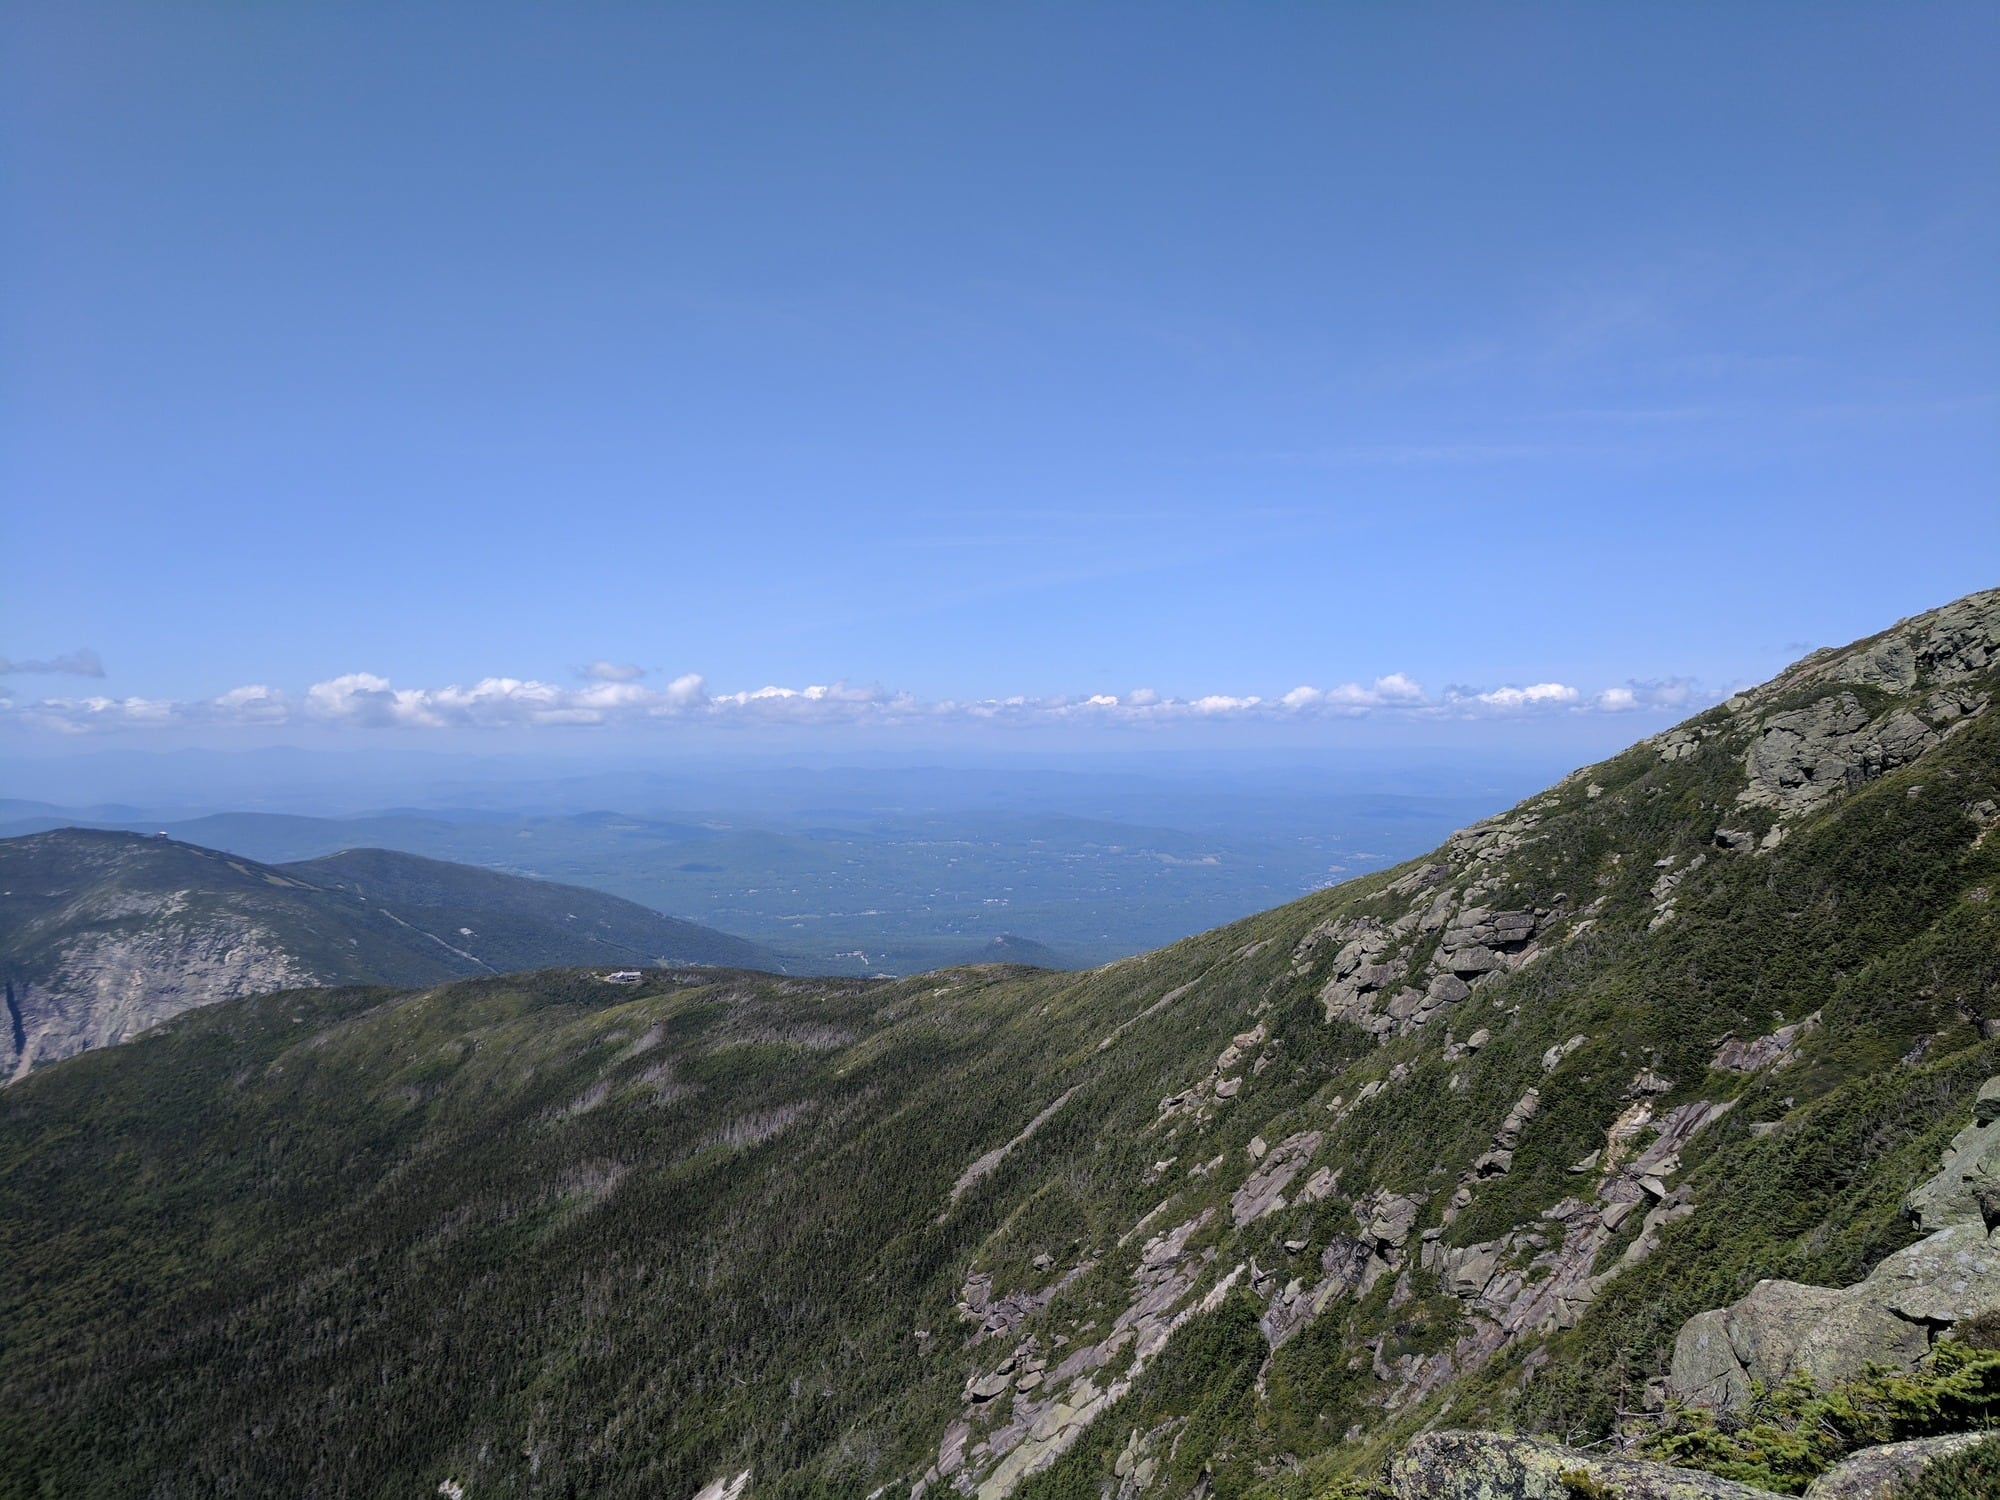 Check out our detailed trail guide to hiking New Hampshire's 8.5 mile Franconia Ridge Loop. We've included when to go, pros and cons of the different directions, and tips for success on this strenuous trek in the White Mountains.